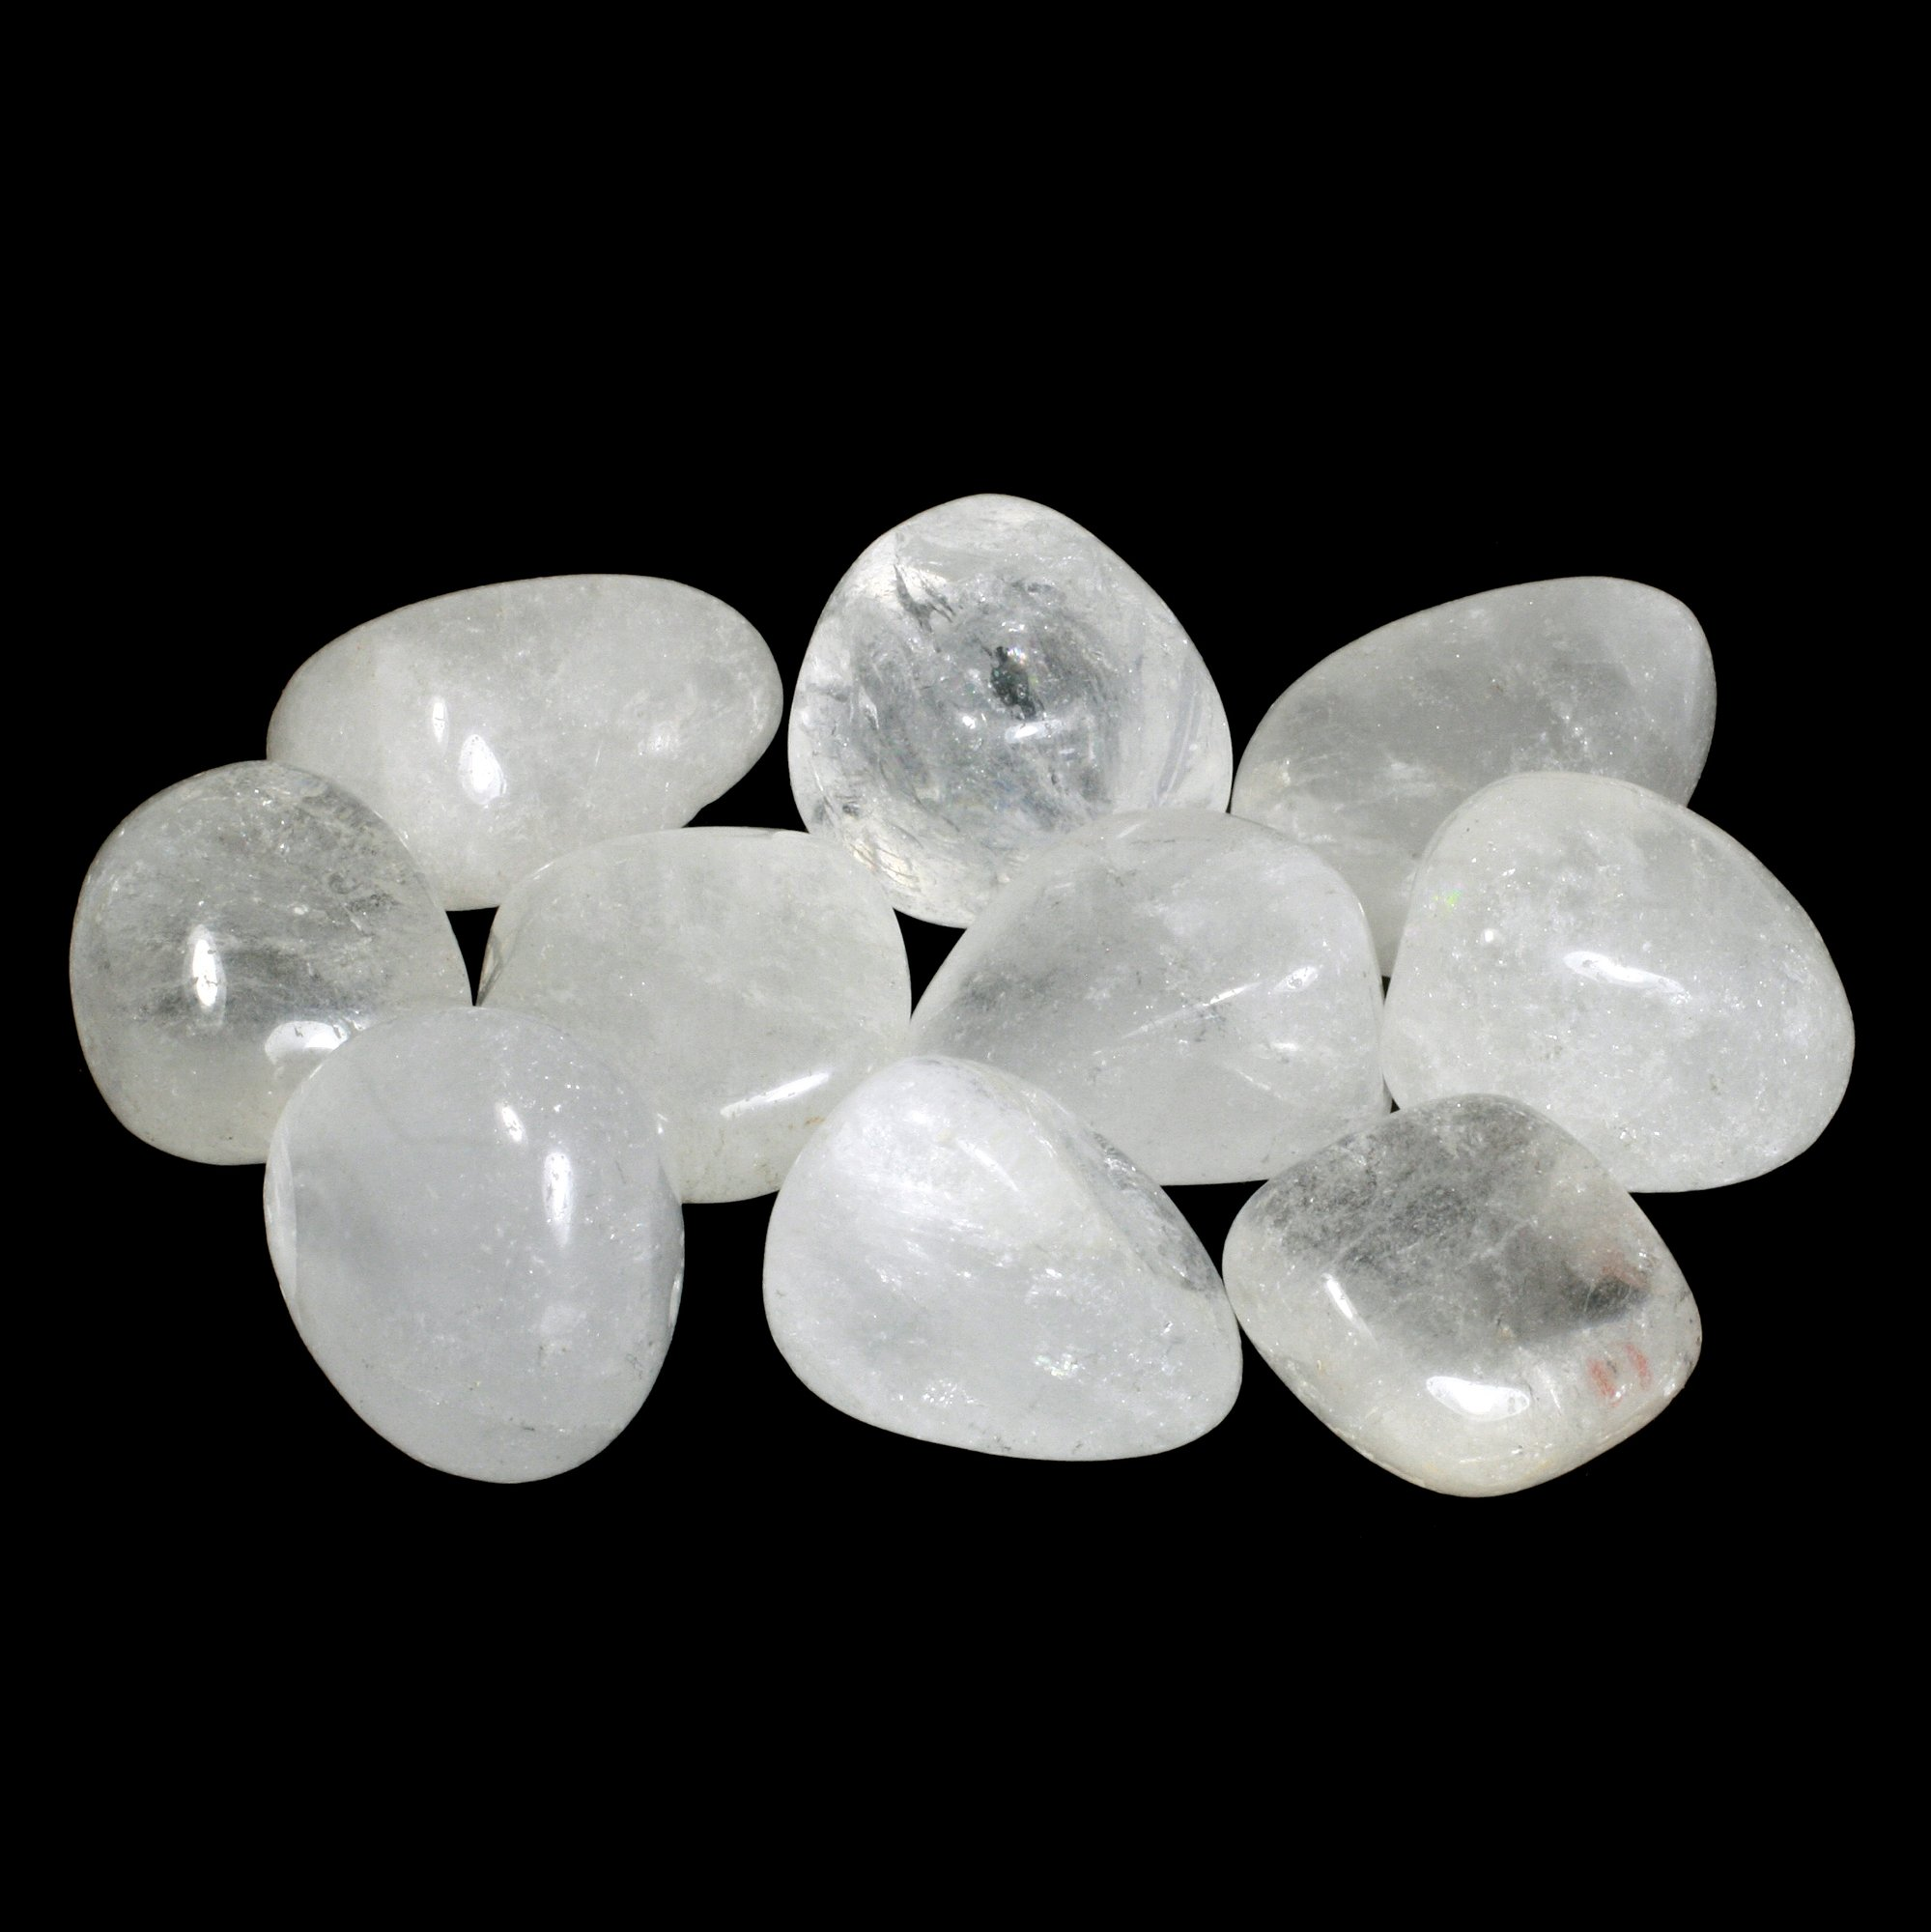 Quartz Tumble Stone (20-25mm)